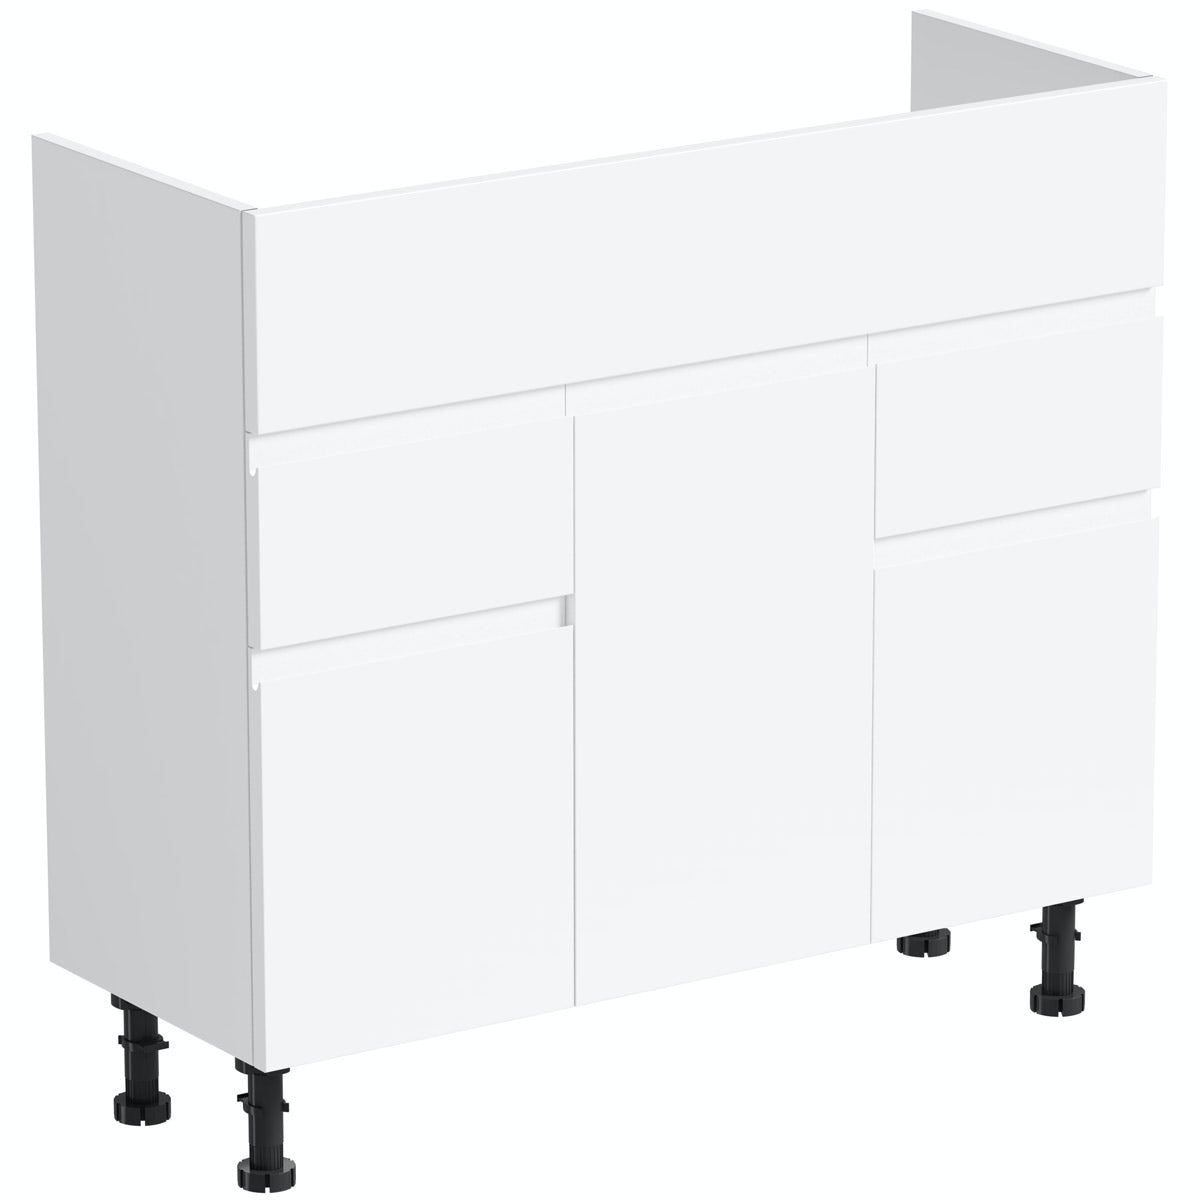 Orchard Wharfe white vanity unit 850mm